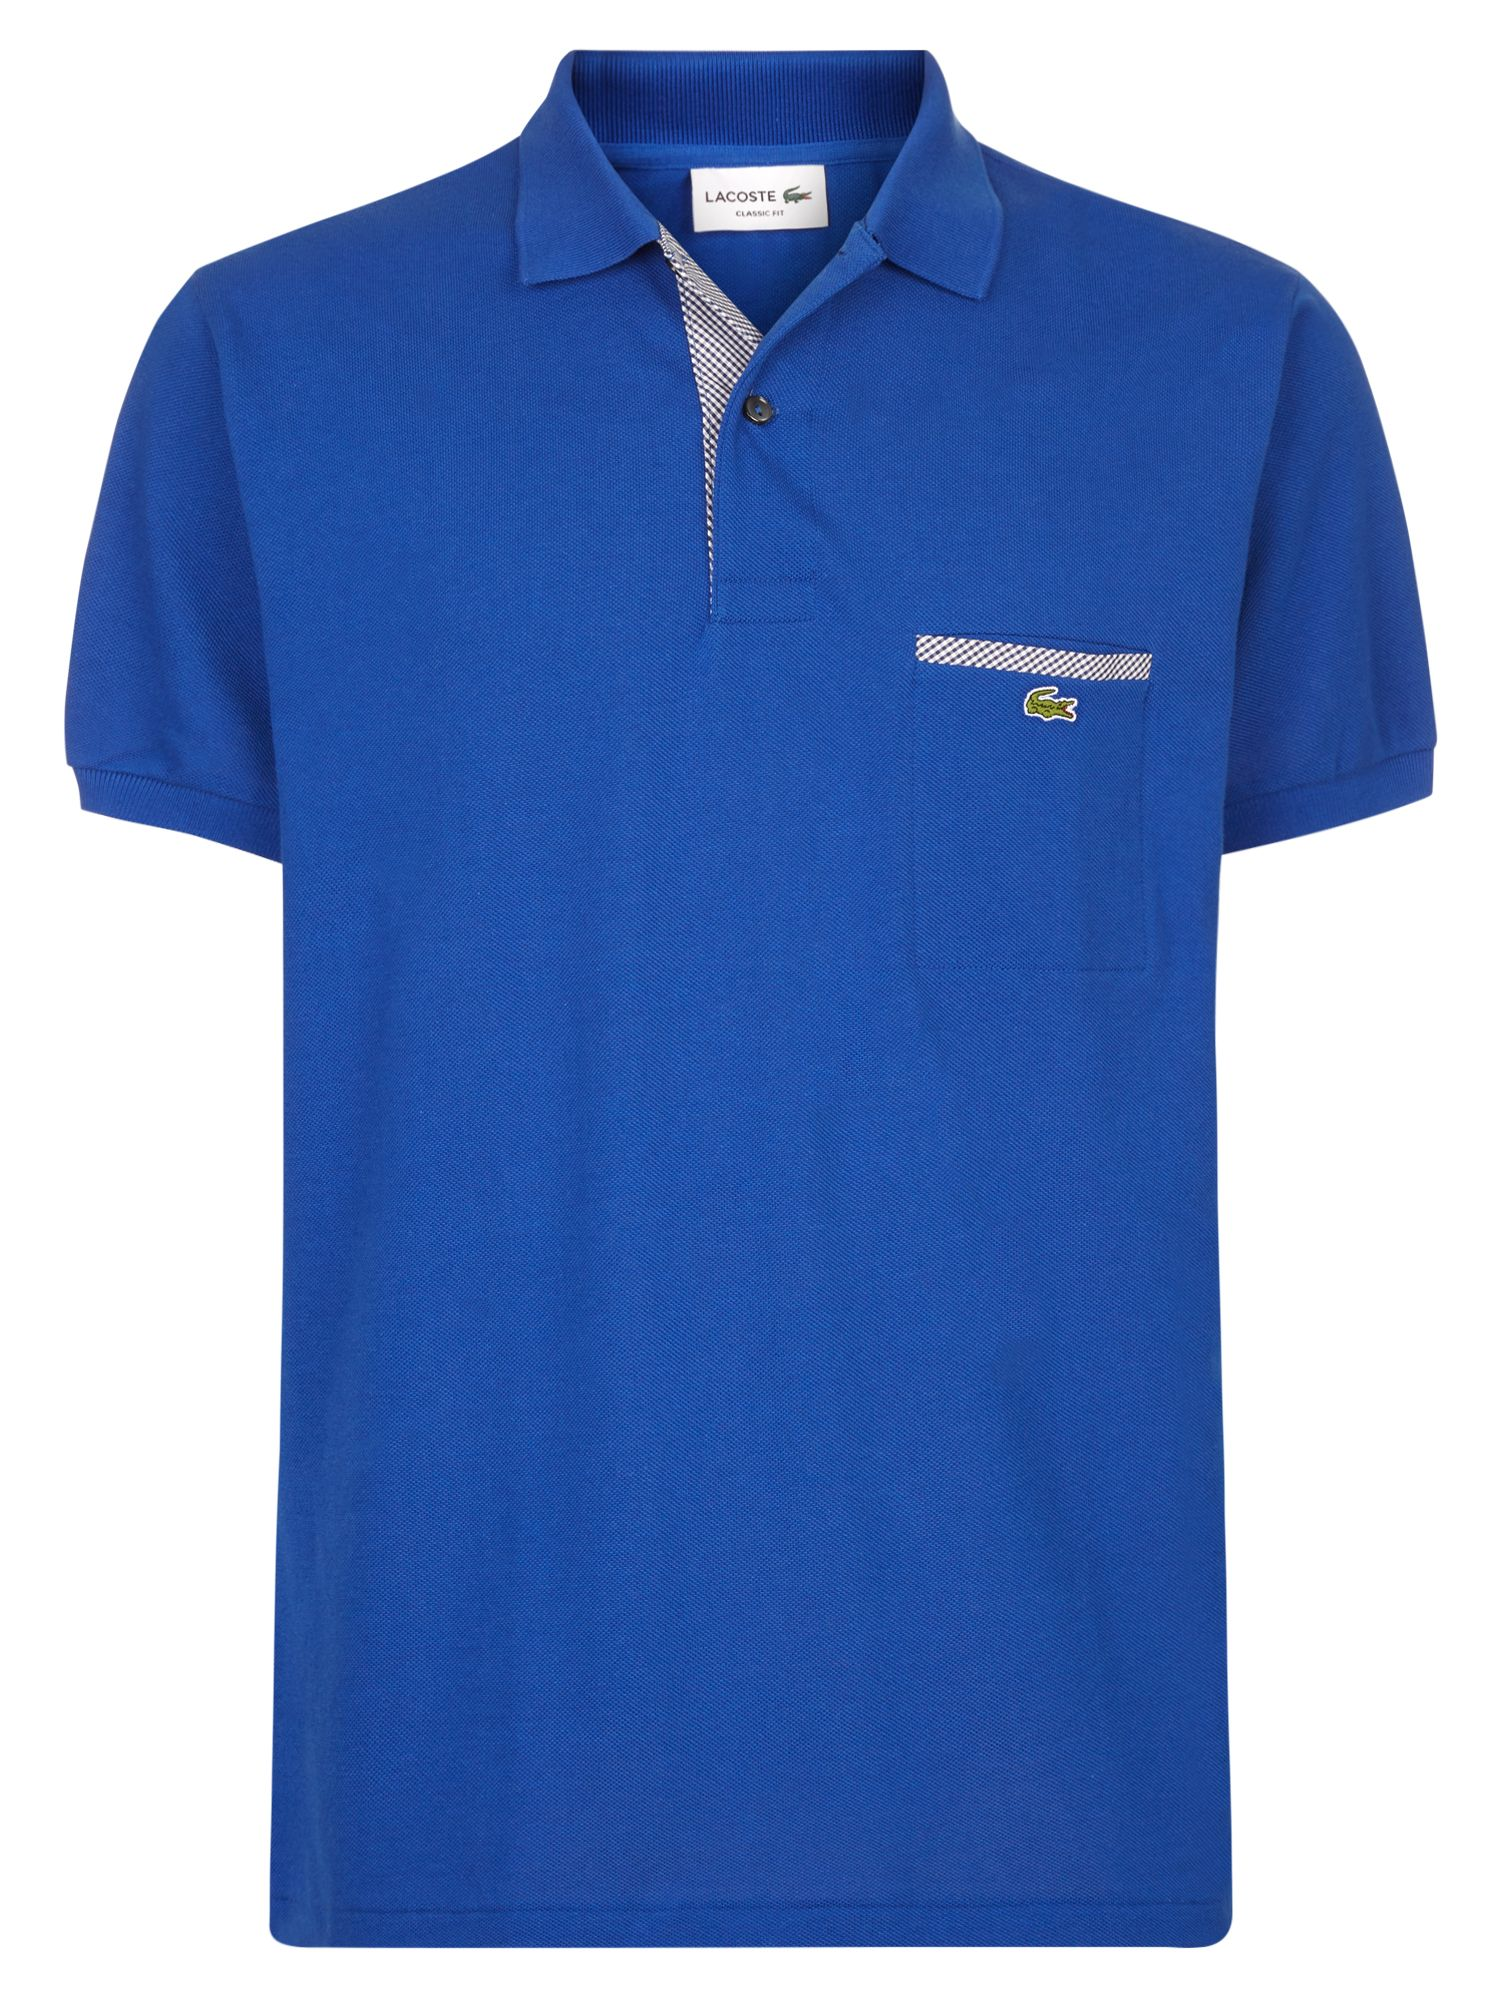 Men's Lacoste Contrast Pocket Polo Shirt, Steamer